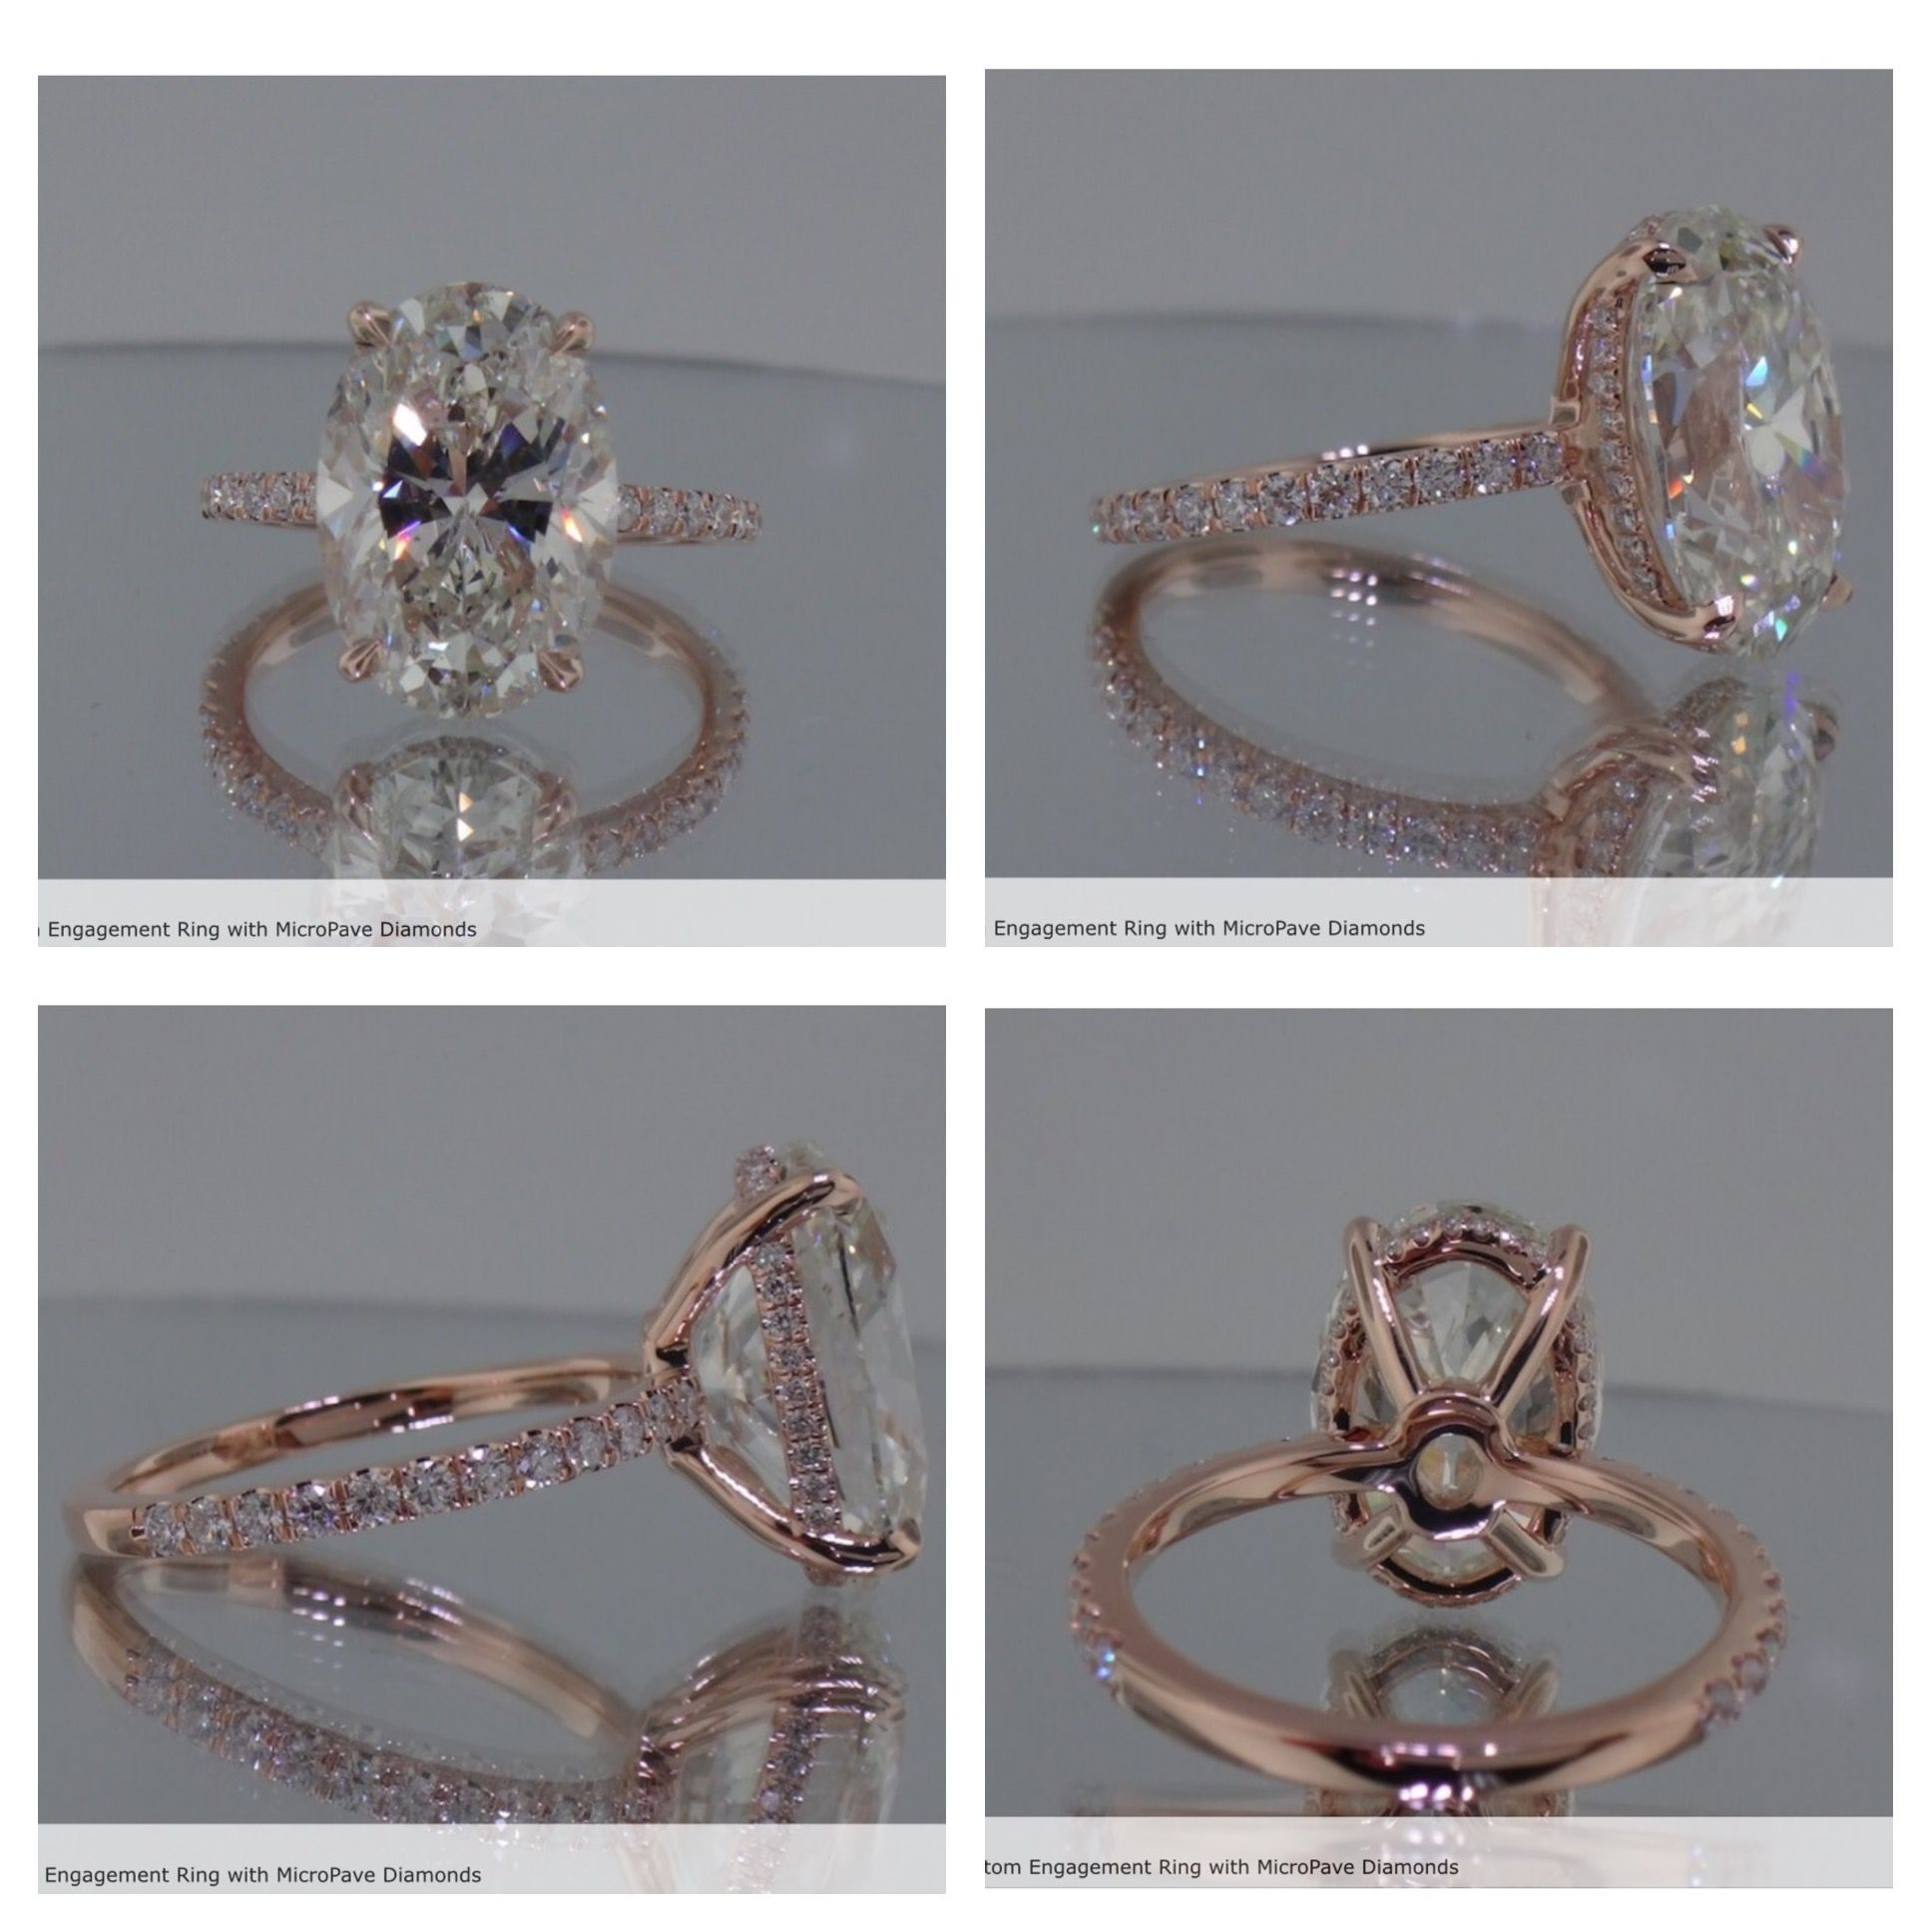 Oval Shaped Diamond In A Rose Gold Setting Just Like Blake Lively's Ring